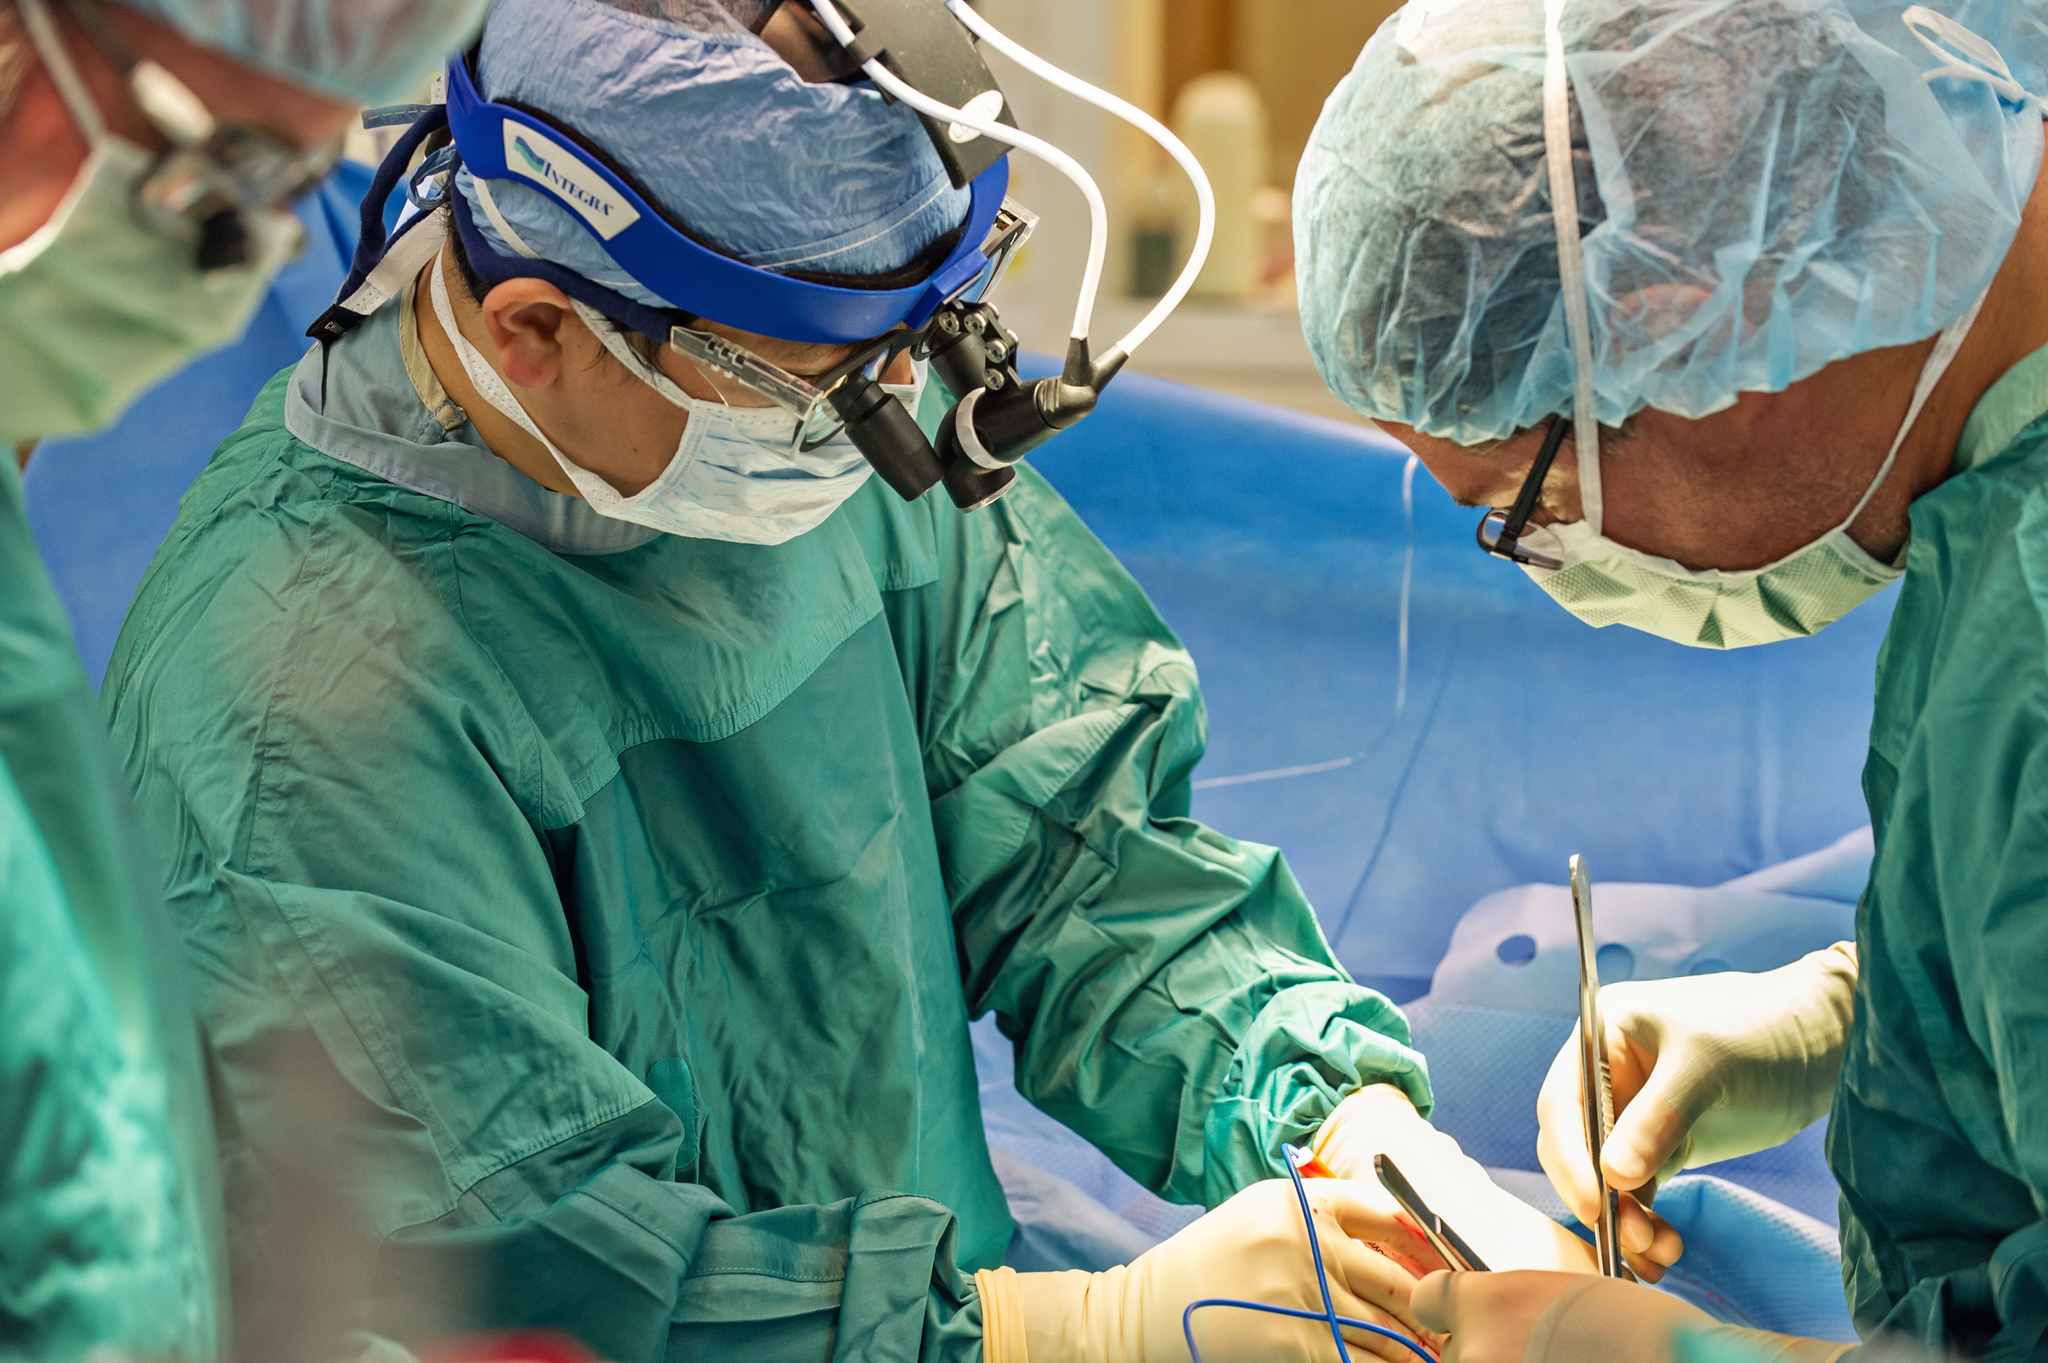 Surgeons inserting a LVAD into a patient